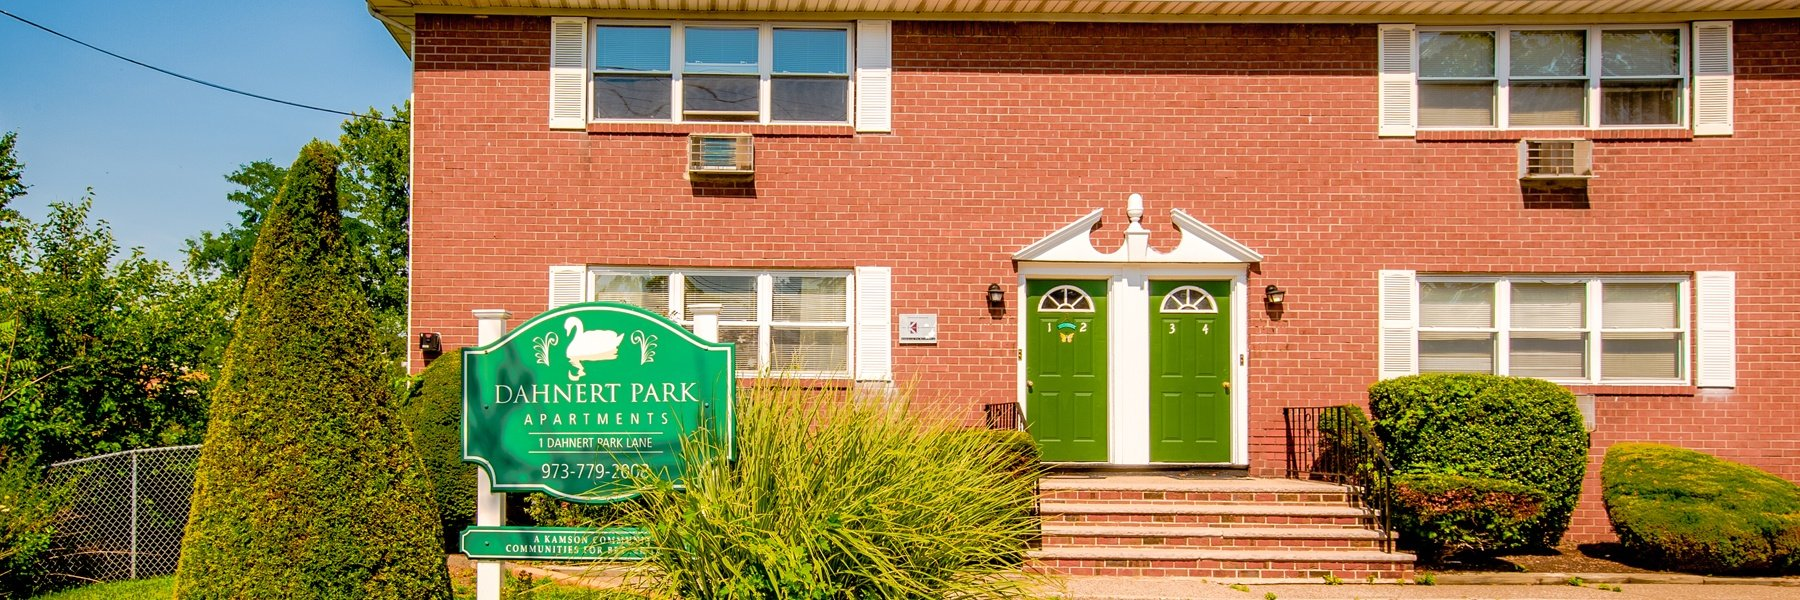 Dahnert Park Apartments For Rent in Garfield, NJ Welcome